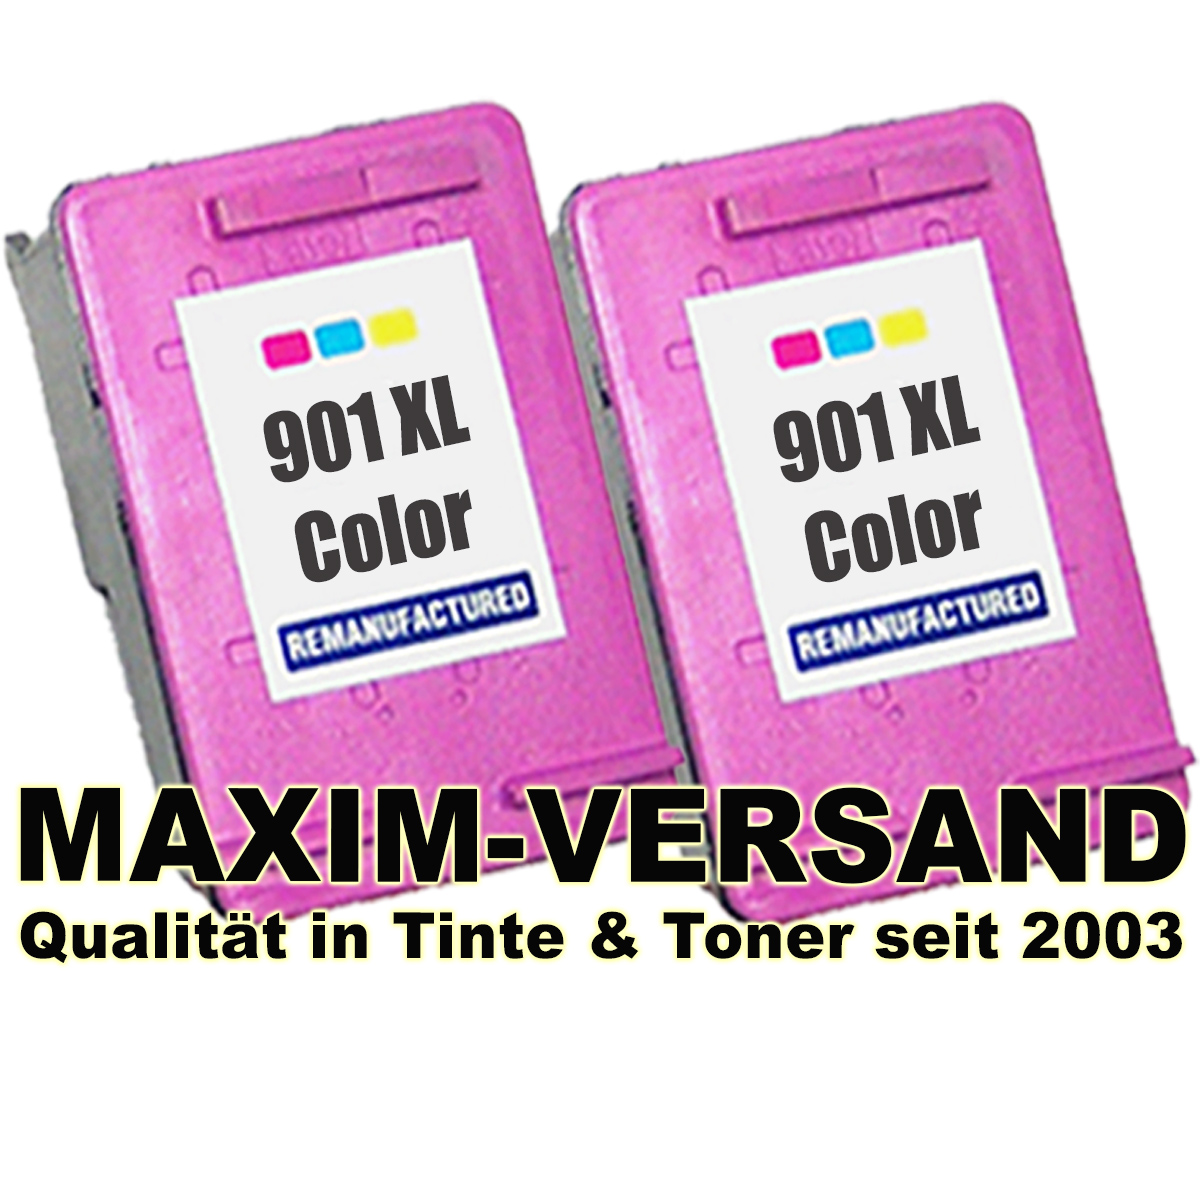 HP 901 XL 3-farbig / tri-color x 2 - kompatibel